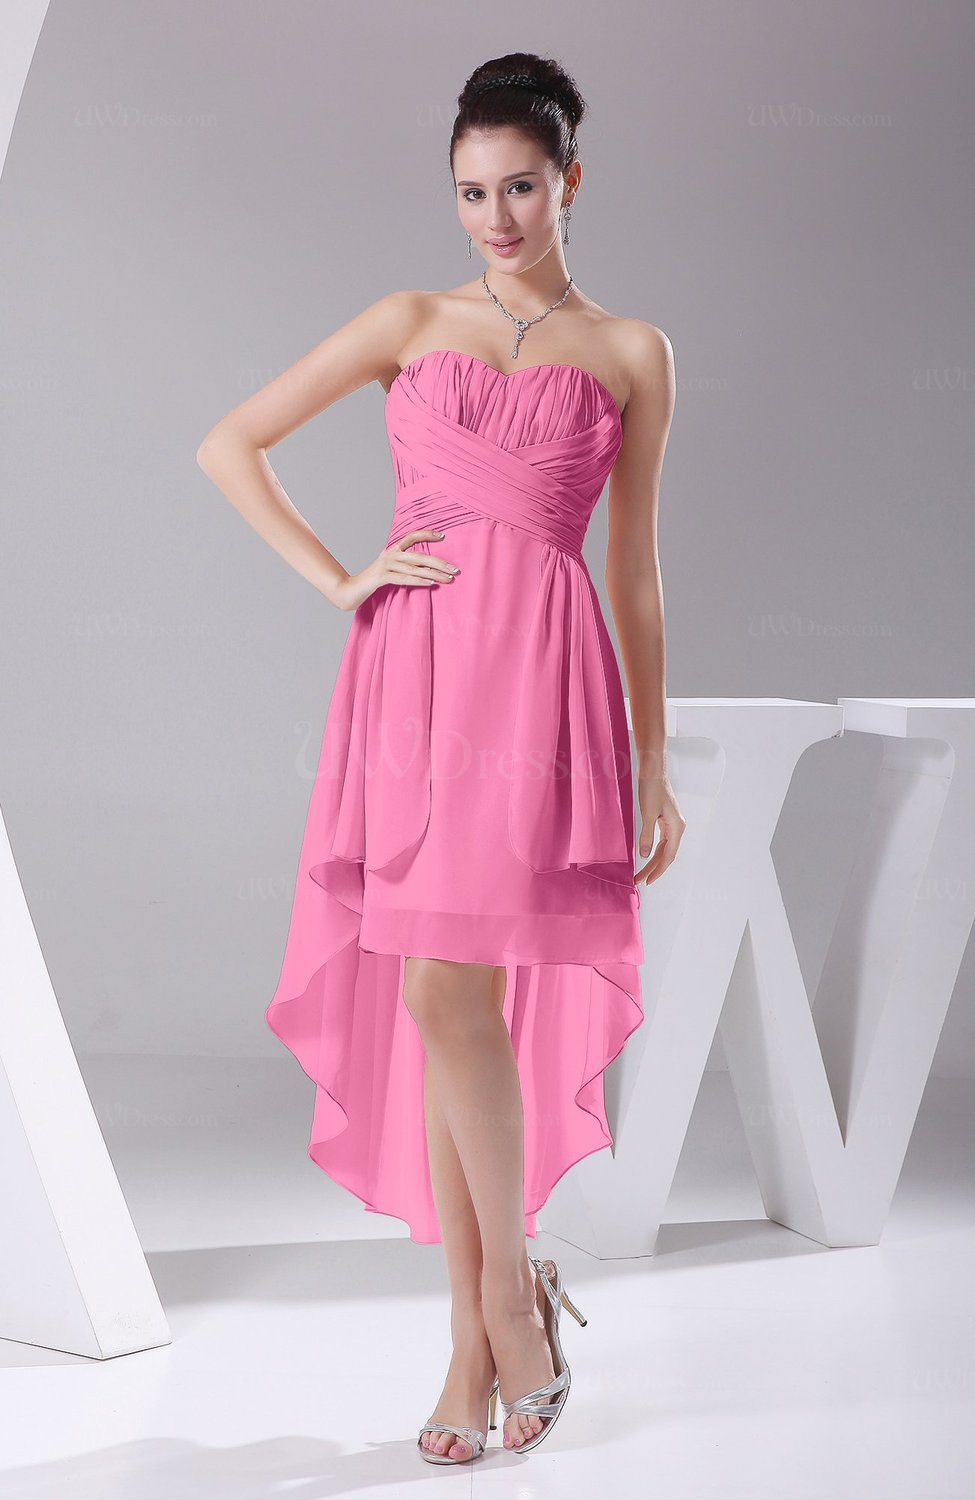 Pink Informal Wedding Dresses : Pink informal a line sweetheart chiffon ruching bridesmaid